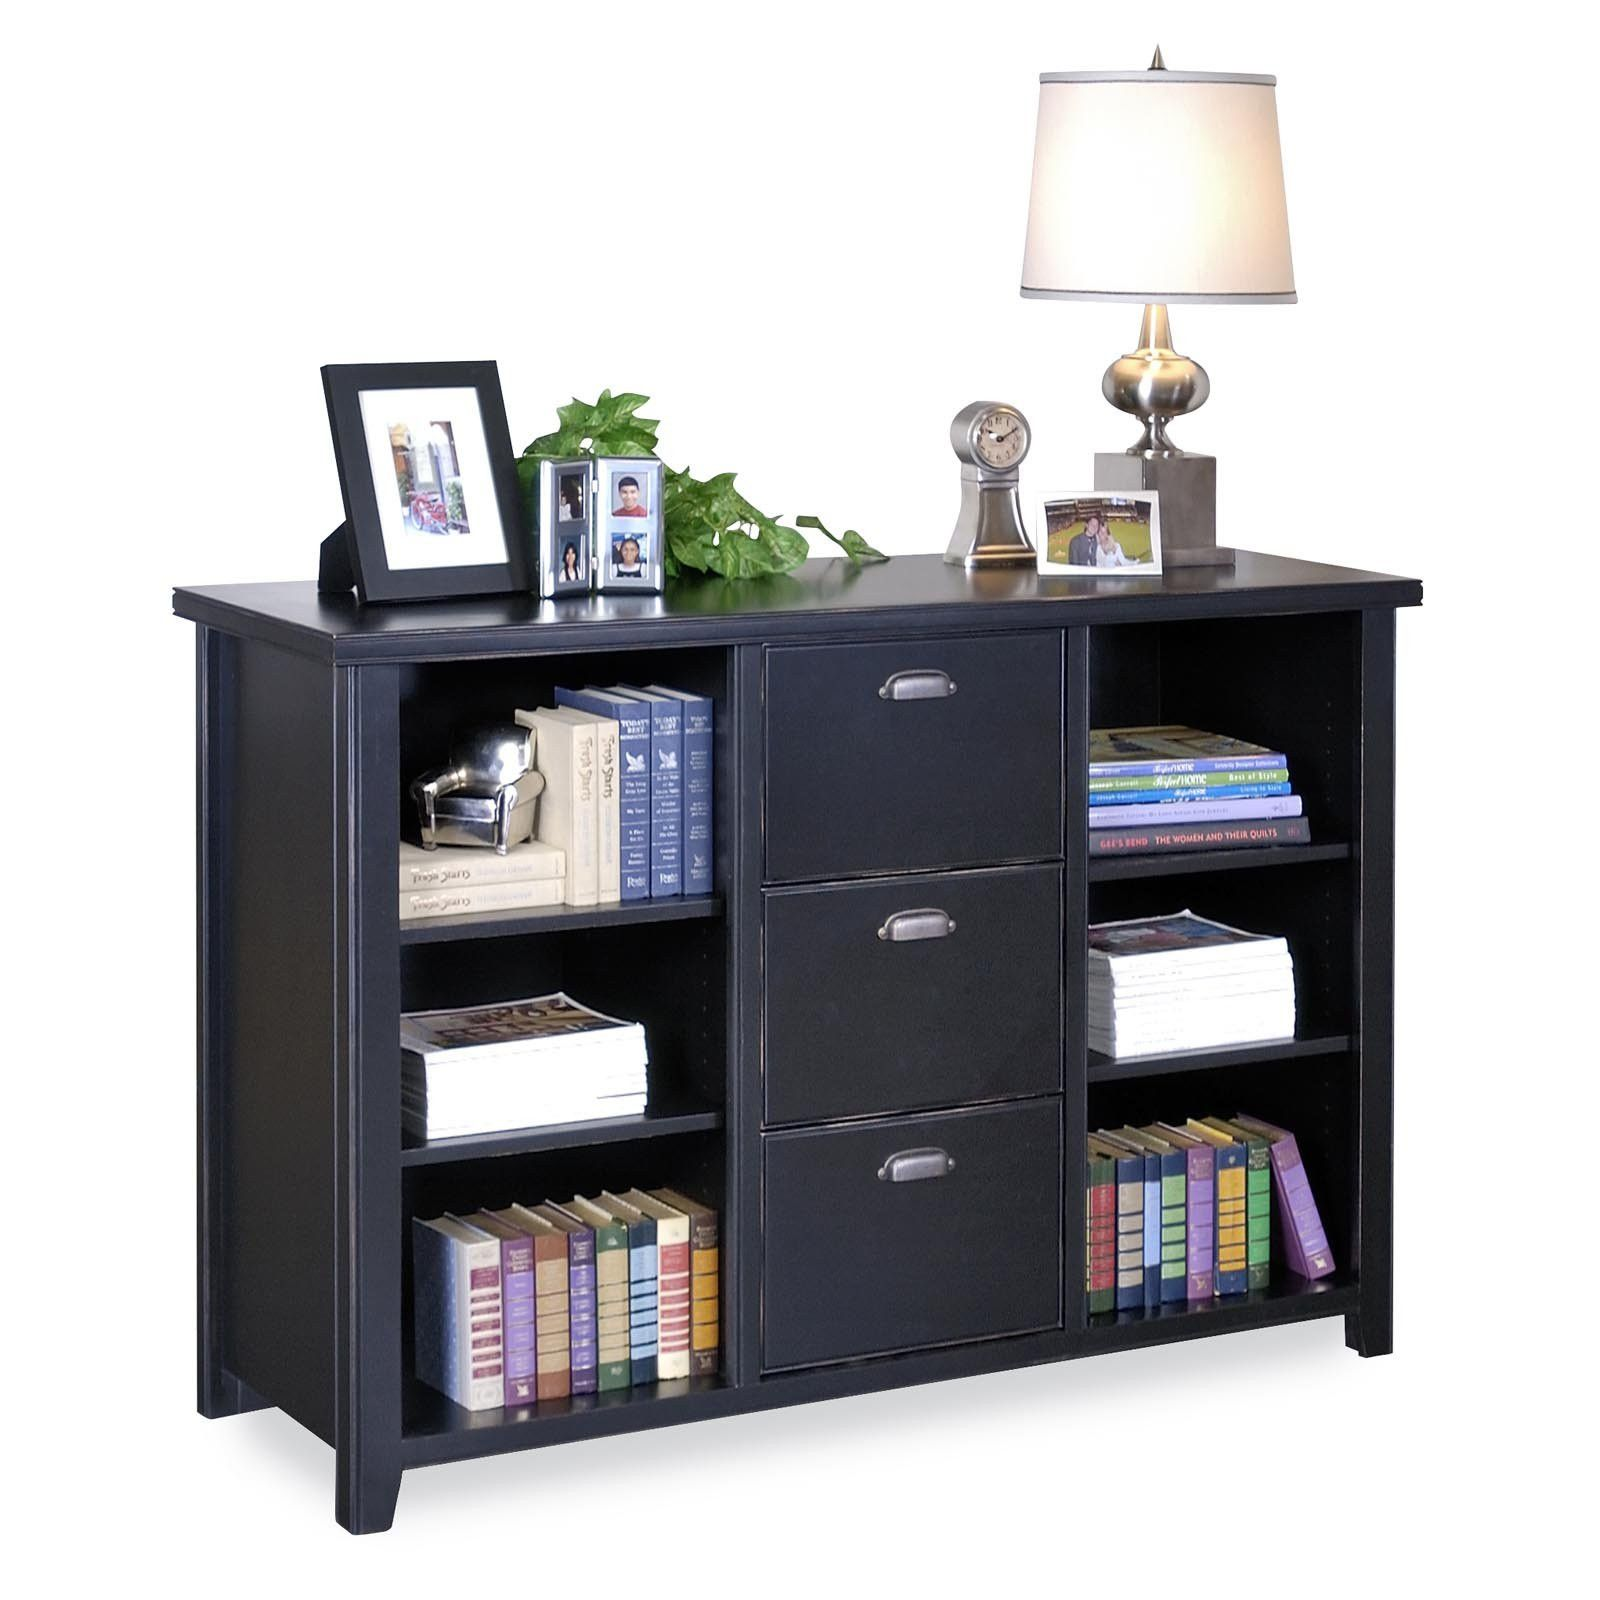 Merveilleux 2019 Lateral File Cabinet With Bookcase   Kitchen Cabinet Lighting Ideas  Check More At Http: